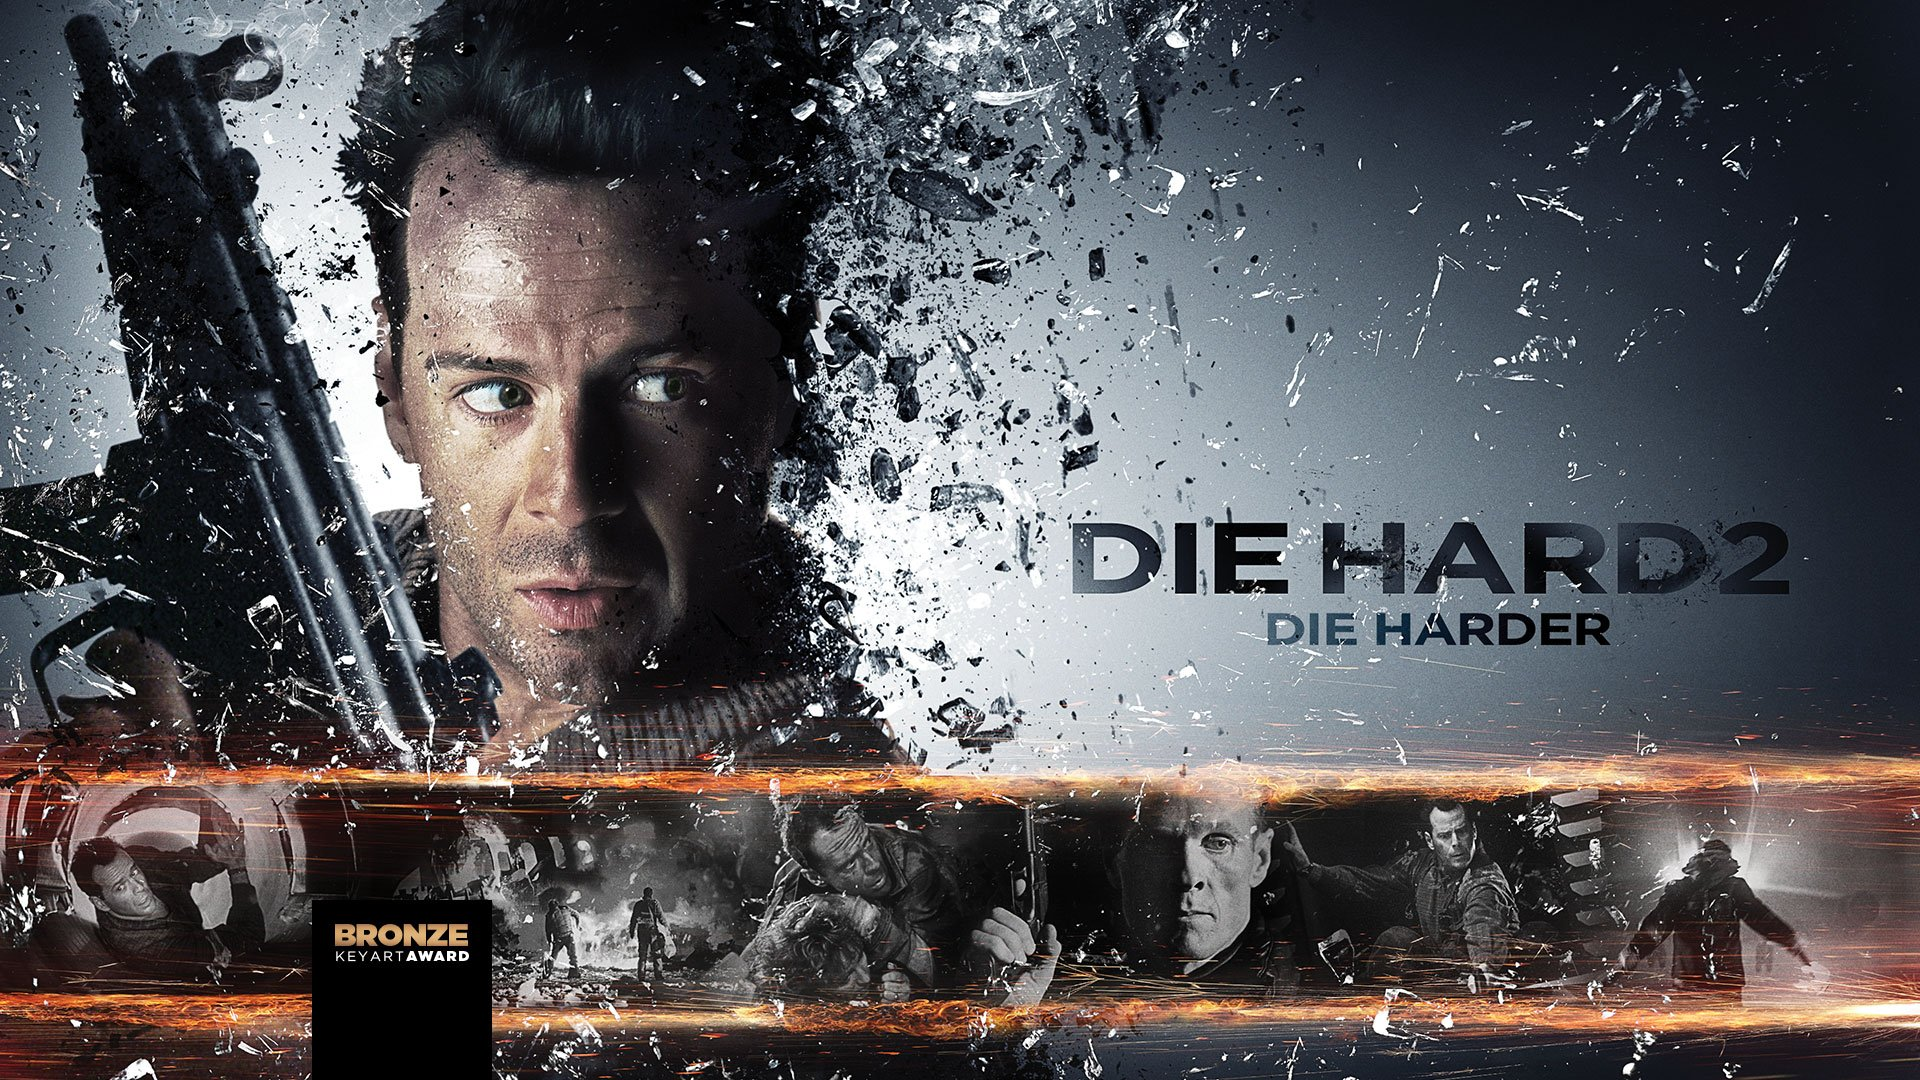 die hard 4 Rent live free or die hard (2007) starring bruce willis and justin long on dvd and blu-ray get unlimited dvd movies & tv shows delivered to your door with no late fees, ever.